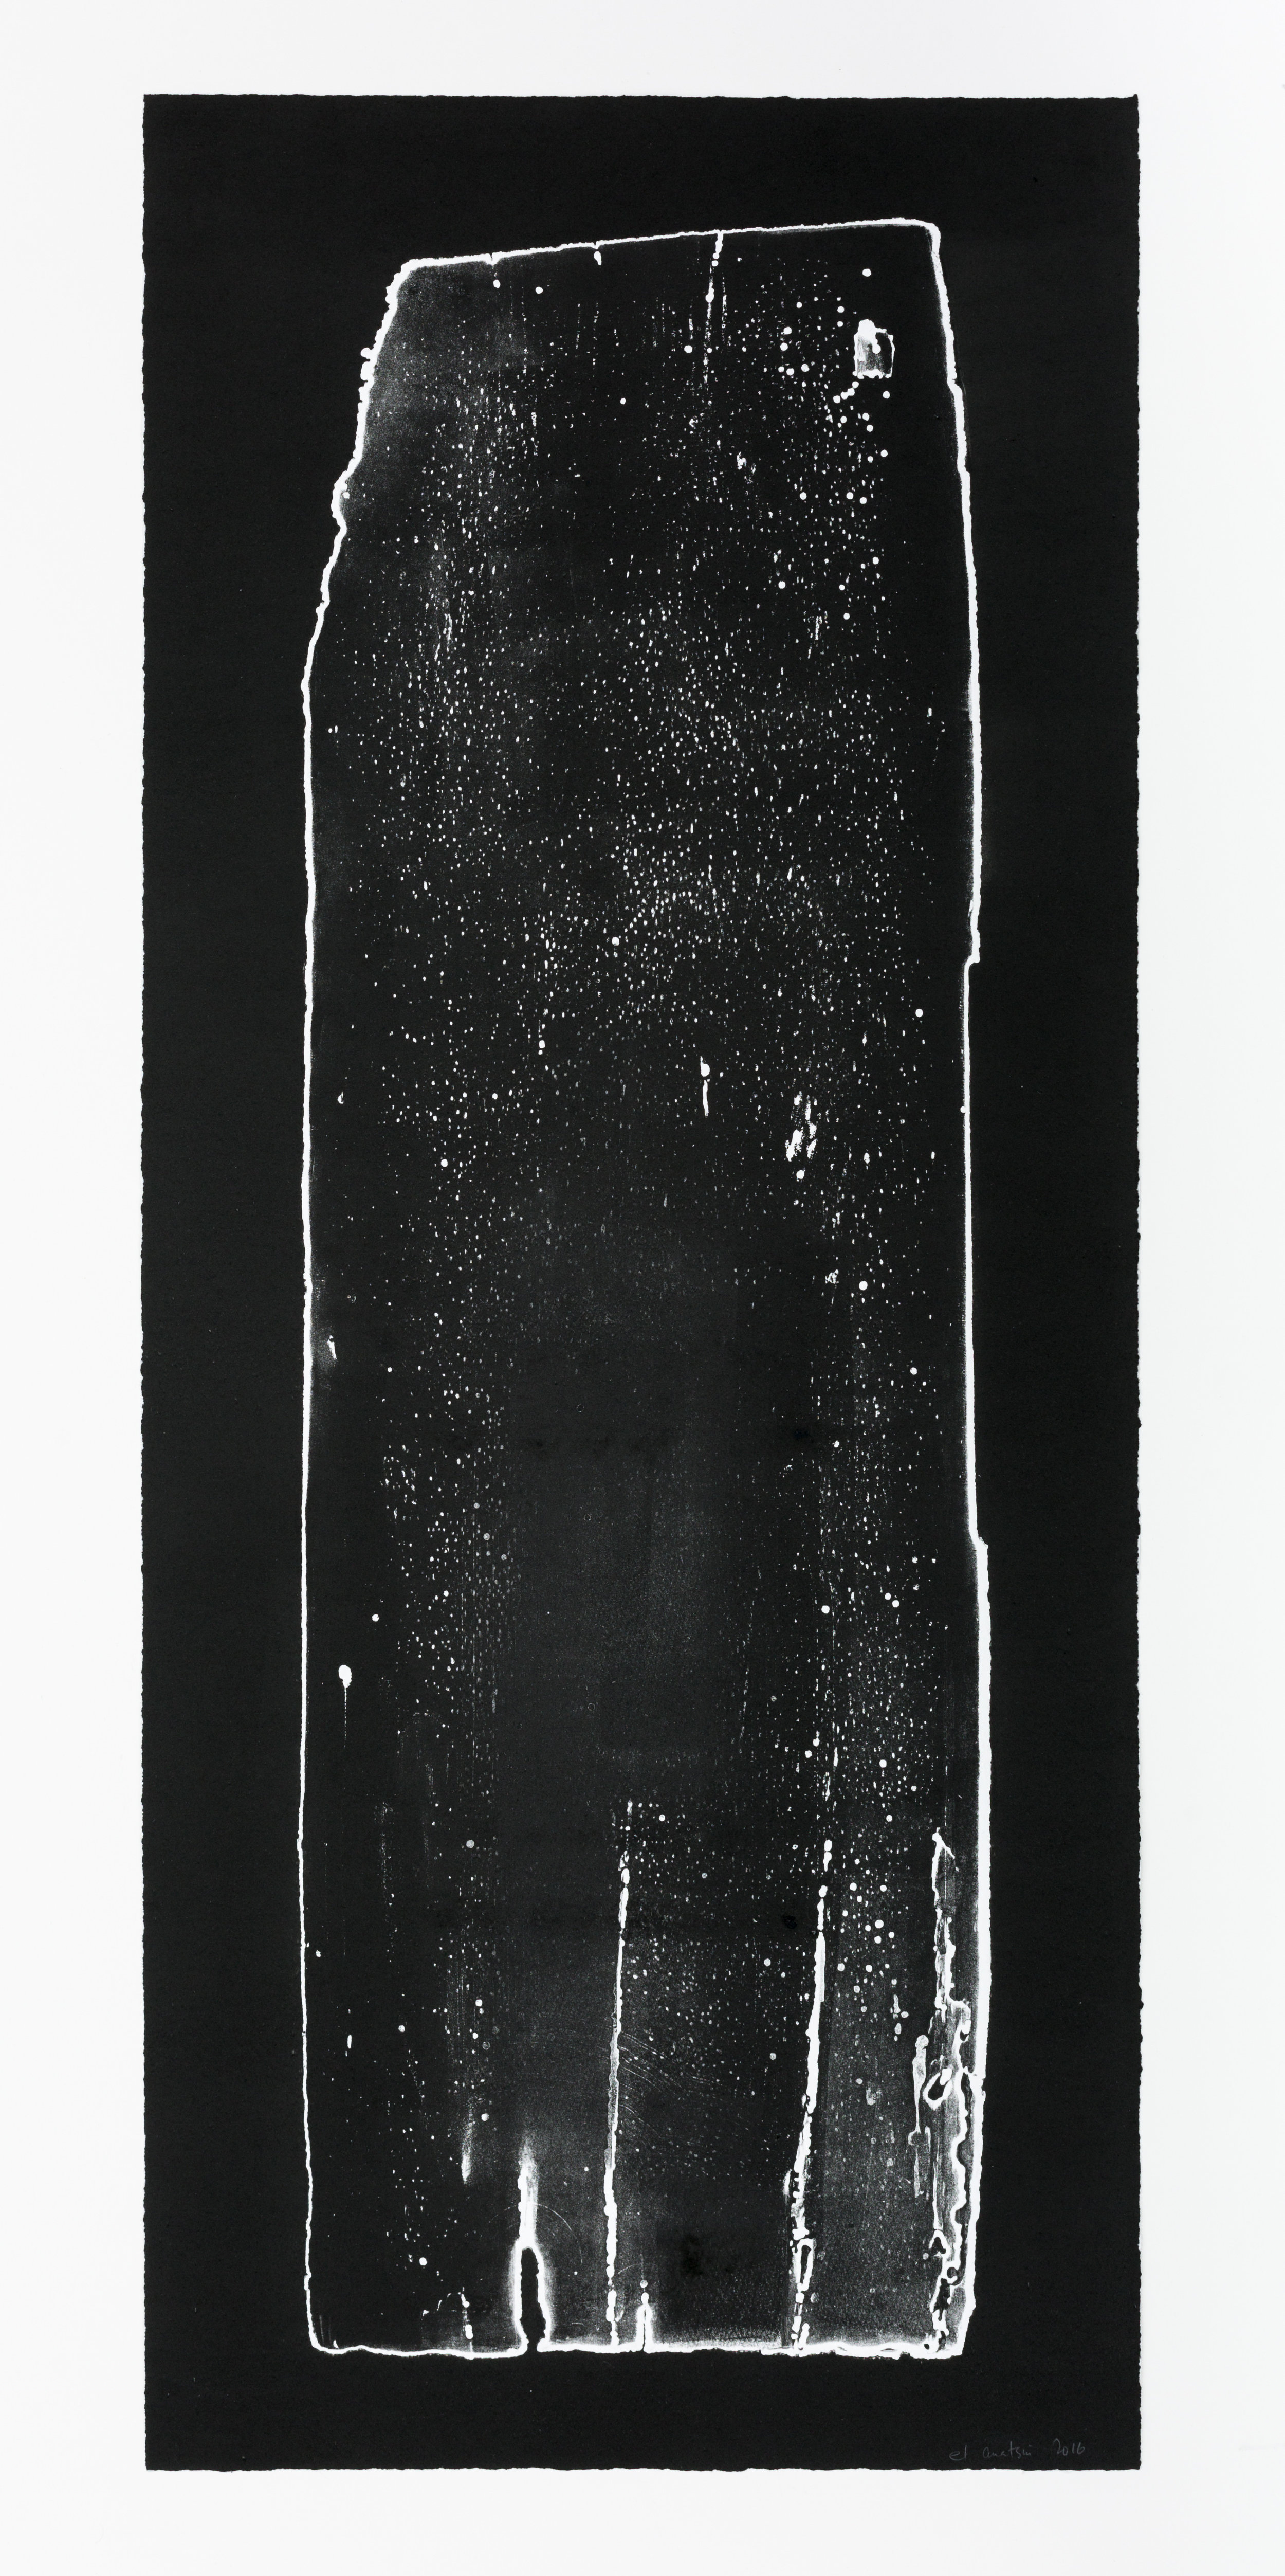 El Anatsui  Untitled (from the Black and White Series ), 2016 Ink on Somerset 300gsm paper 105 x 42.2 cm Edition 1/3